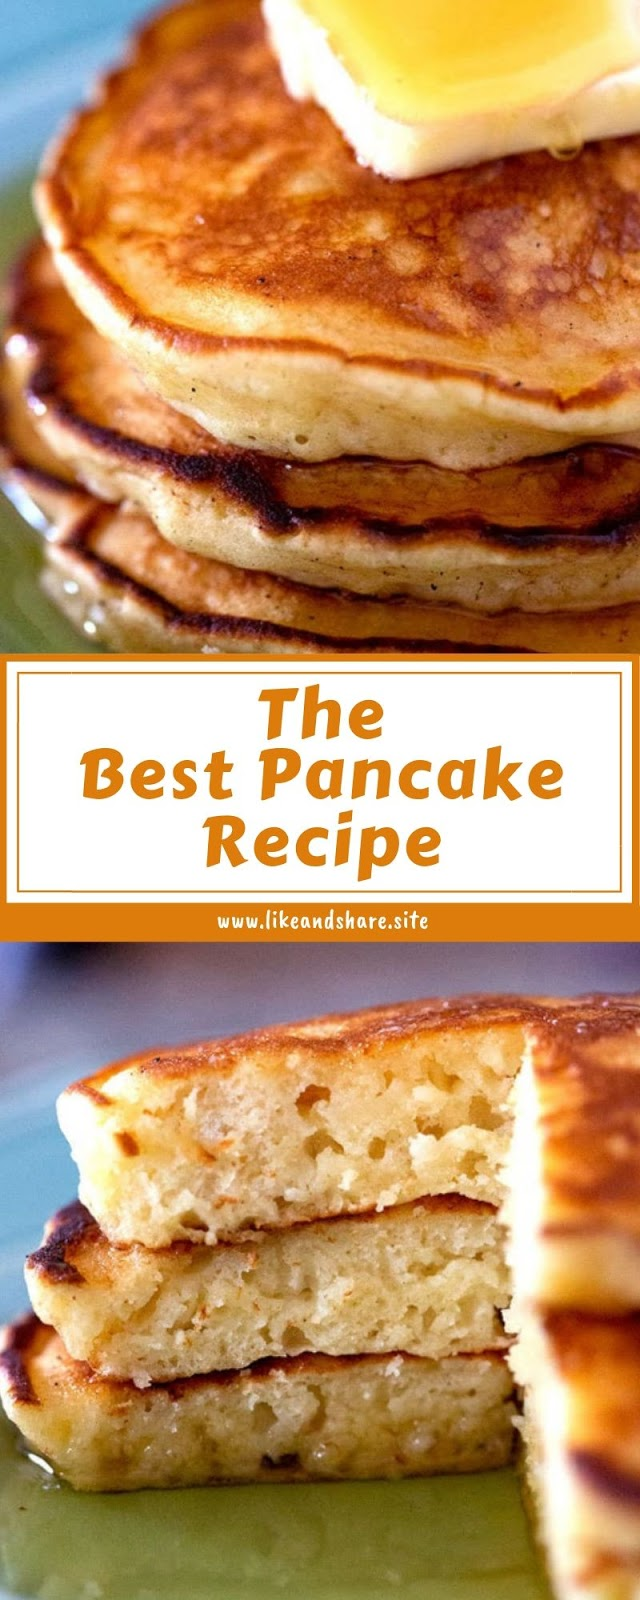 The Best Pancake Recipe